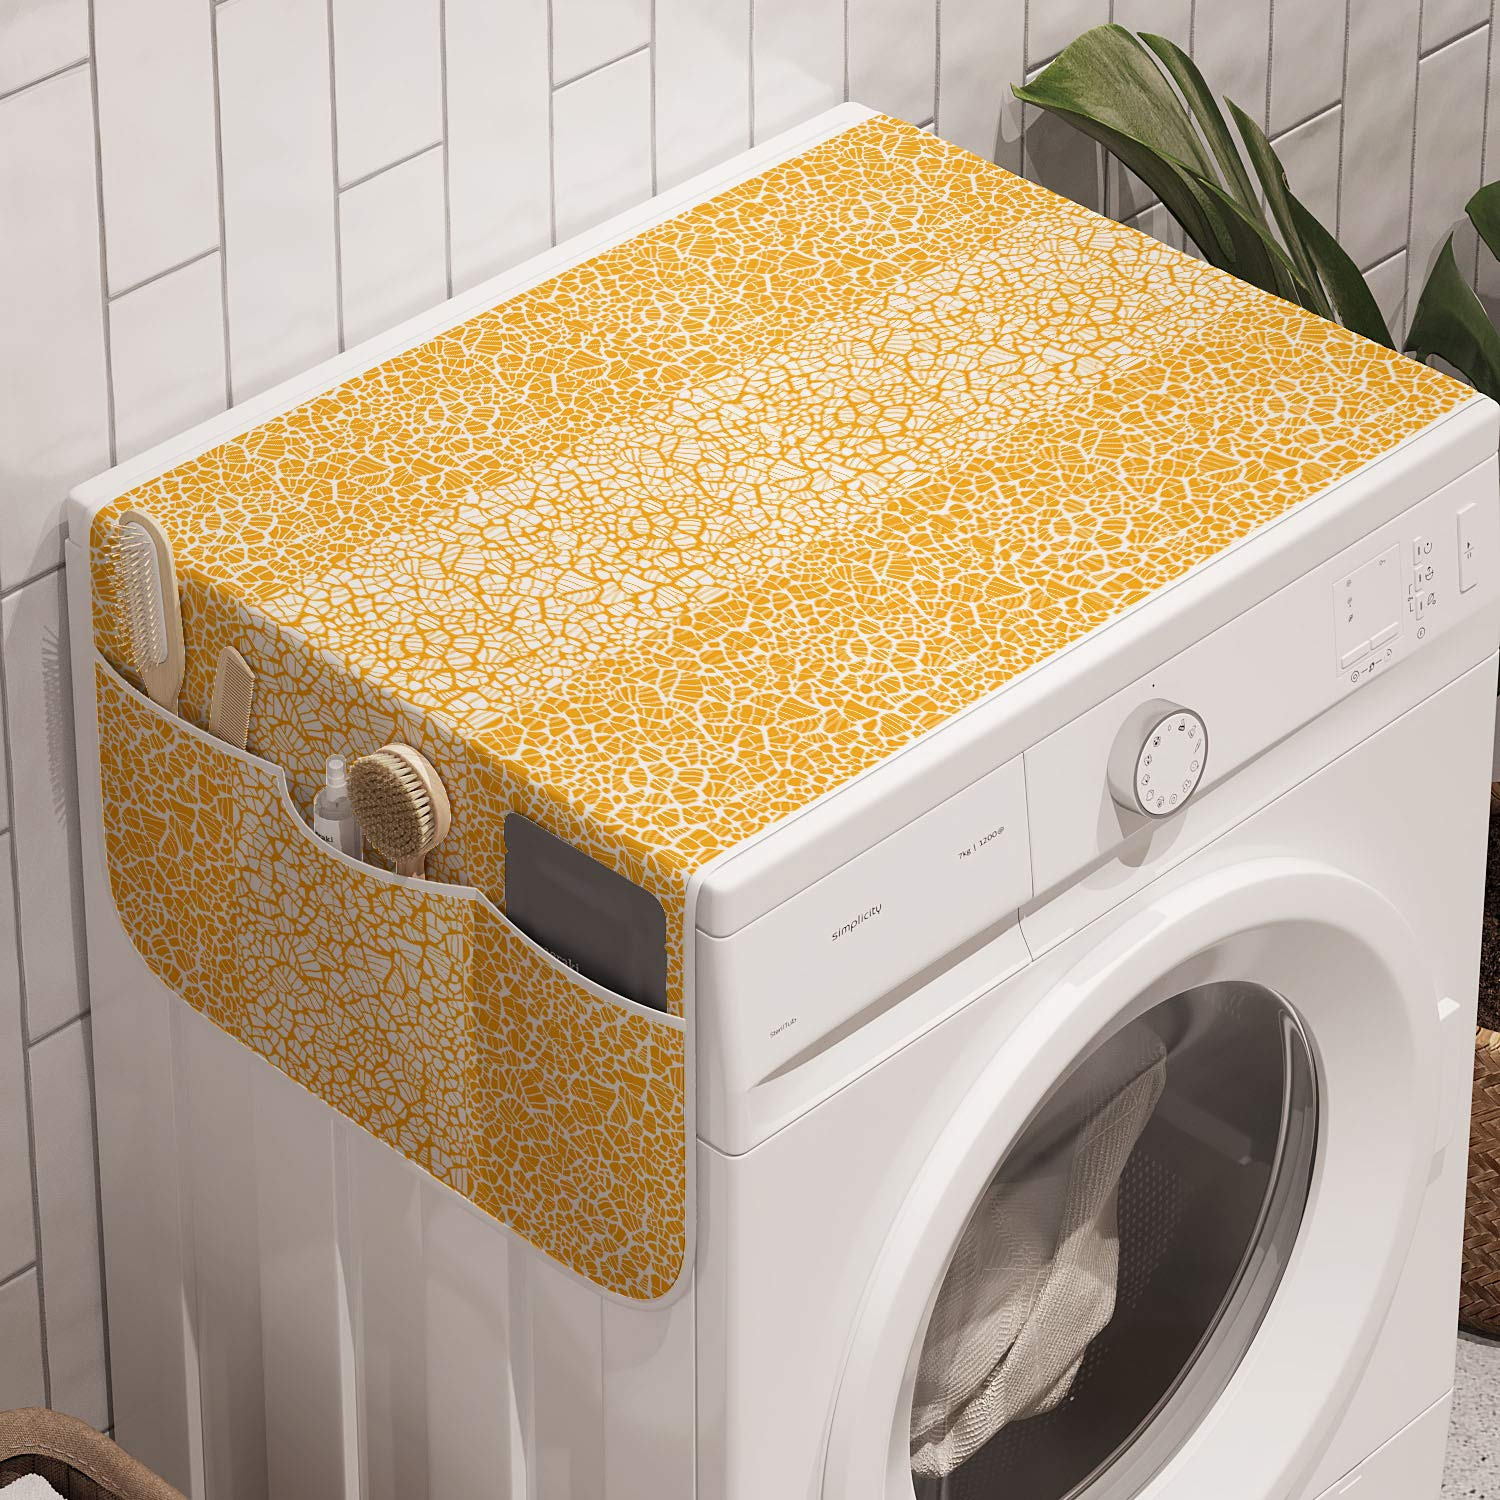 """Ambesonne Orange and White Washing Machine Organizer, Abstract Giraffe Skin Pattern Camouflage Print Spots Stripes, Anti-slip Fabric Top Cover for Washer and Dryer, 47"""" x 18.5"""", Orange and White"""